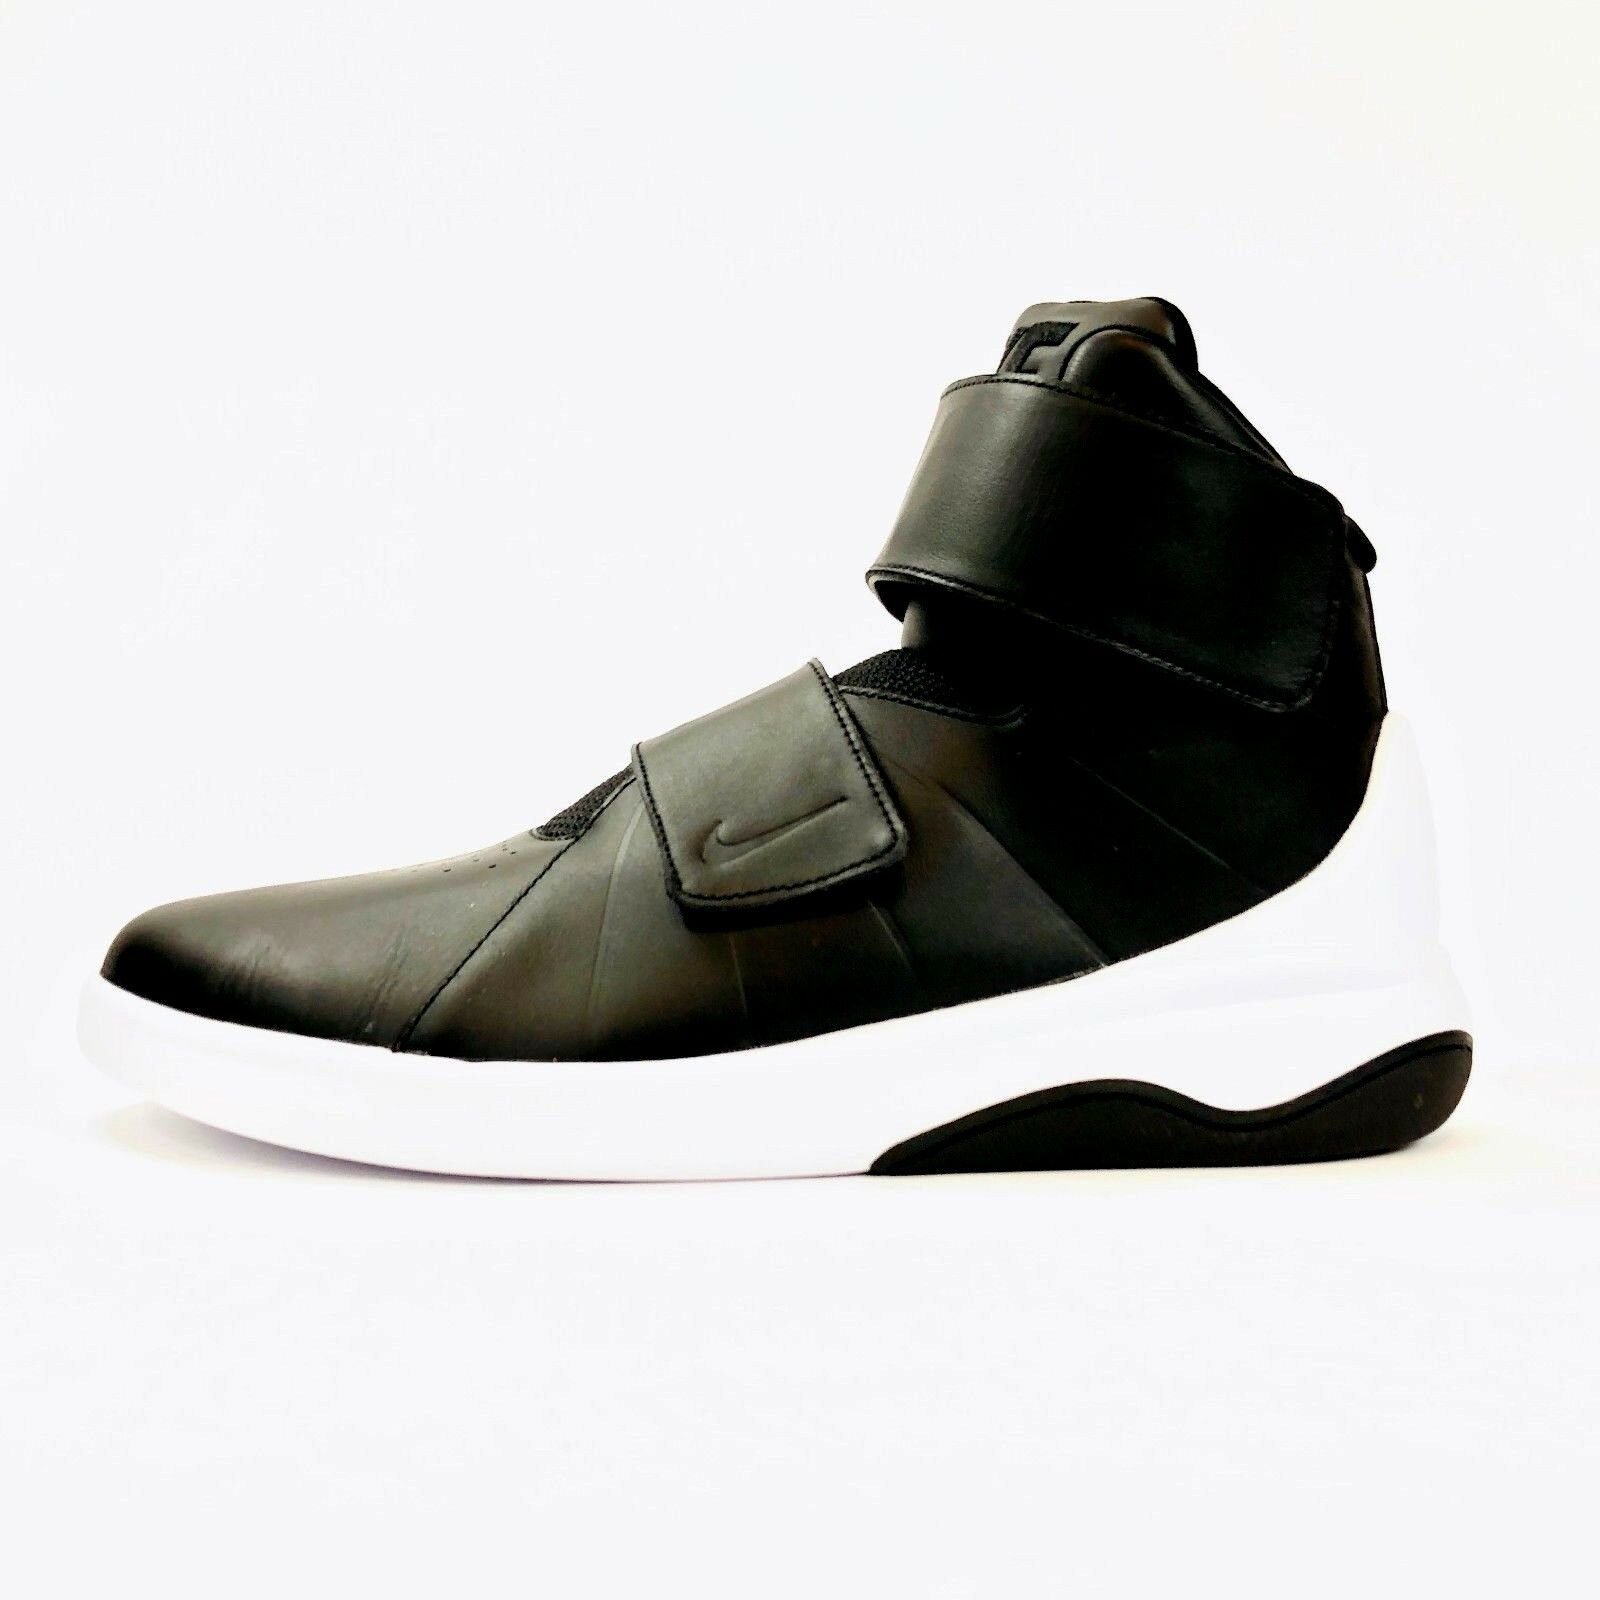 new styles 3d687 85a48 Nike Marxman Black White Athletic shoes shoes shoes 832764-001 Mens Size 12  New In